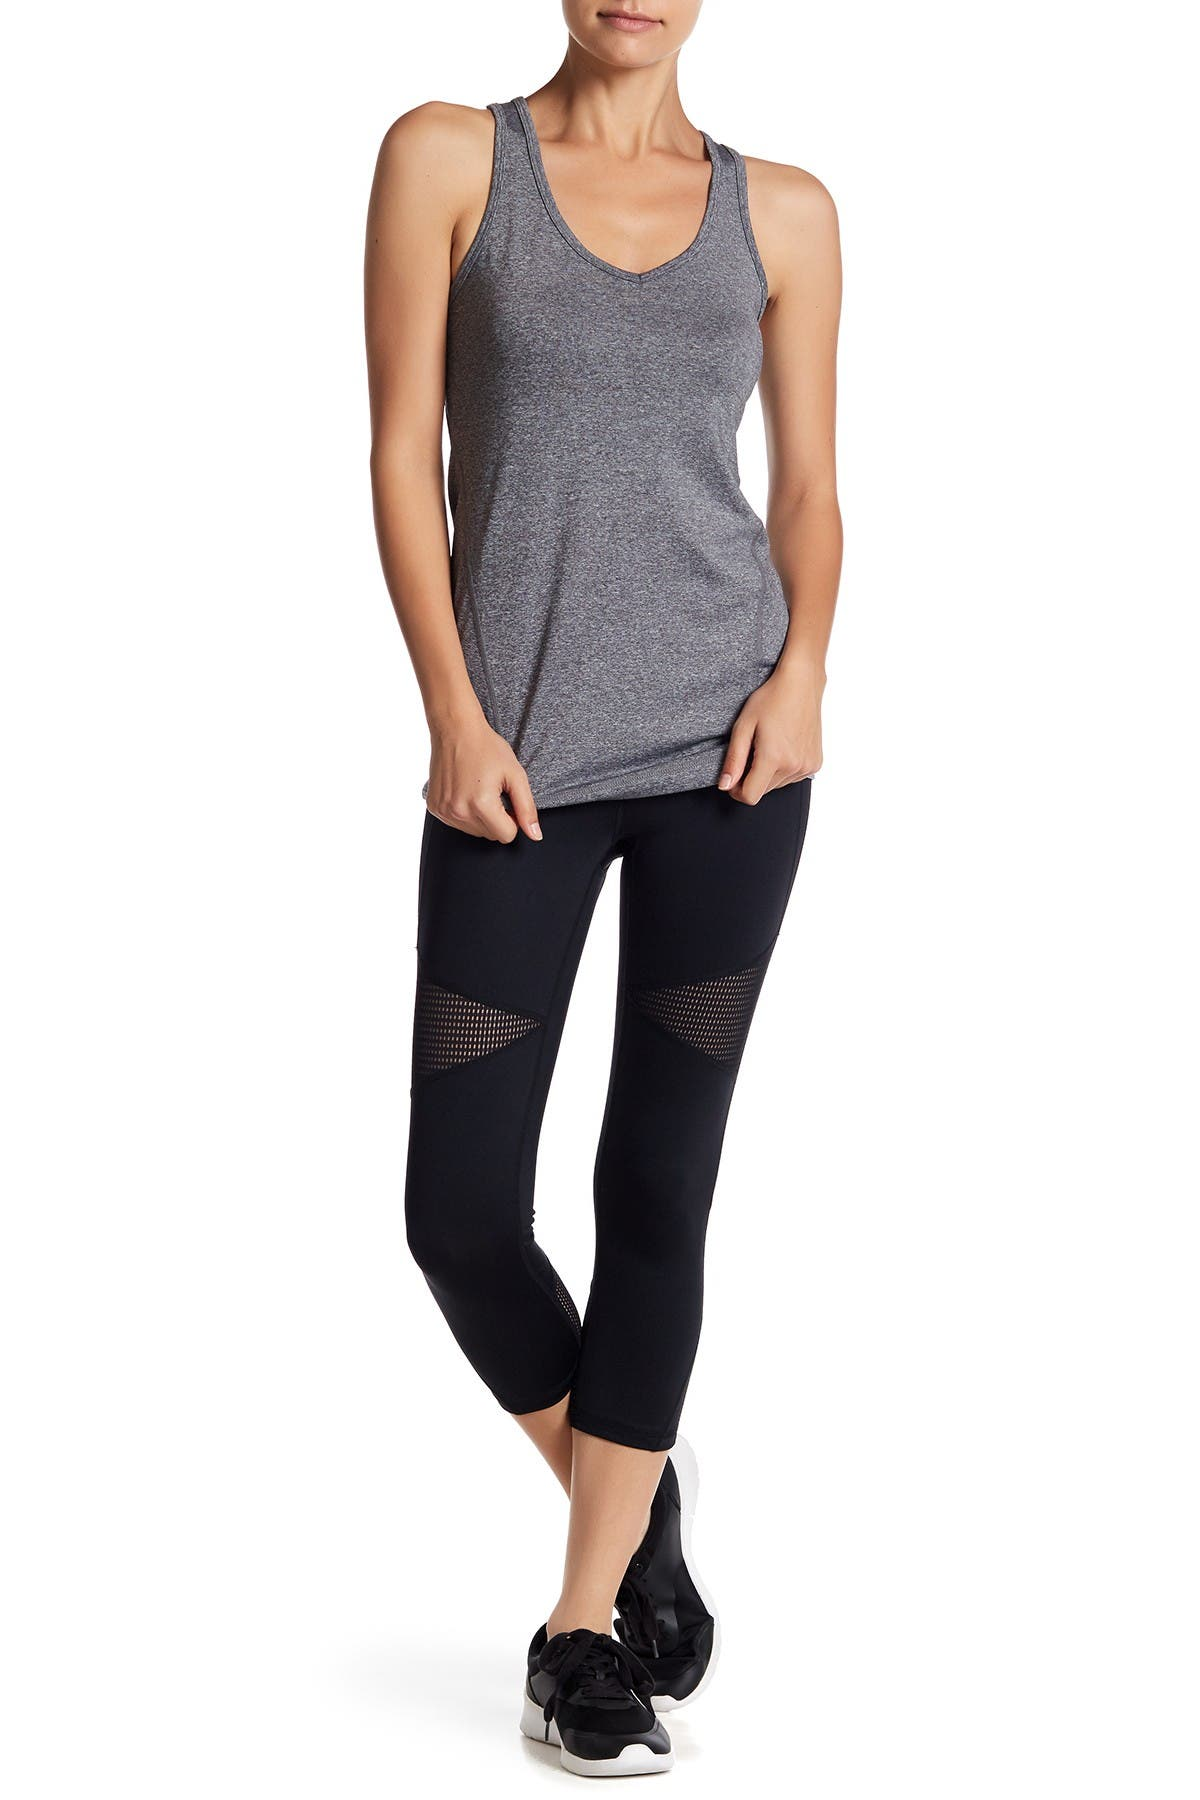 Image of Z By Zella High Waisted Blocked Crop Leggings